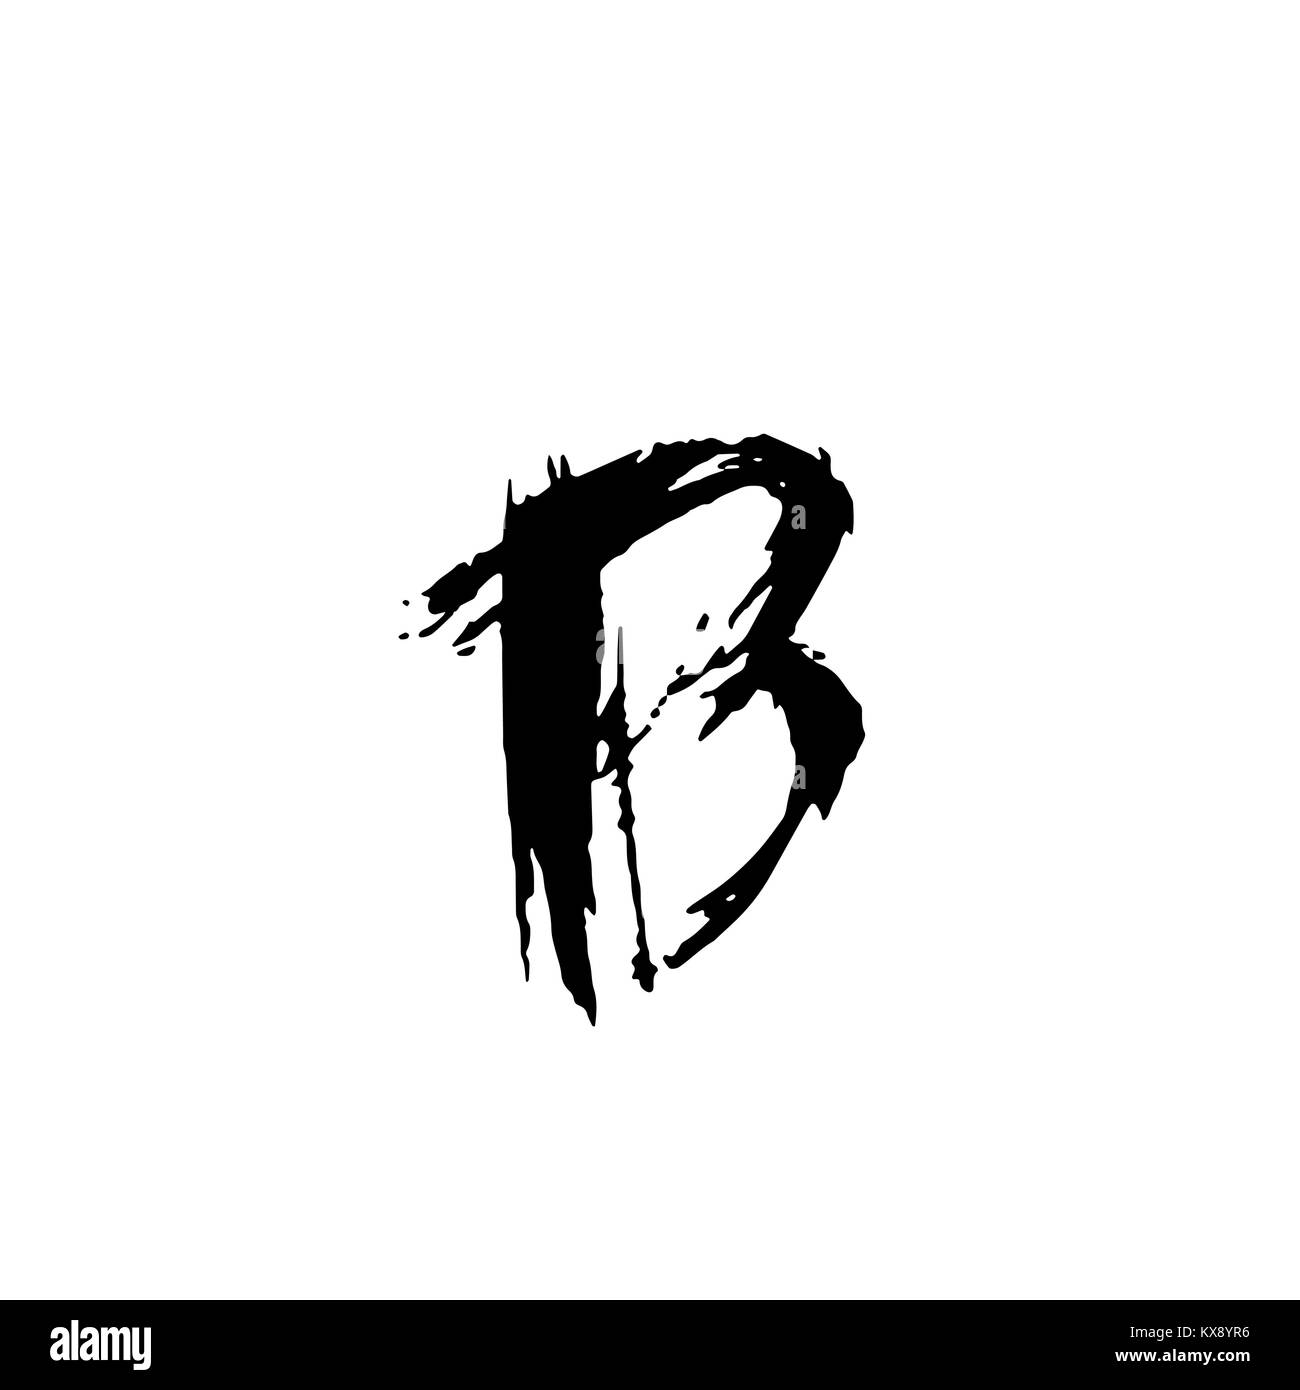 Letter B Handwritten By Dry Brush Rough Strokes Font Vector Illustration Grunge Style Modern Alphabet